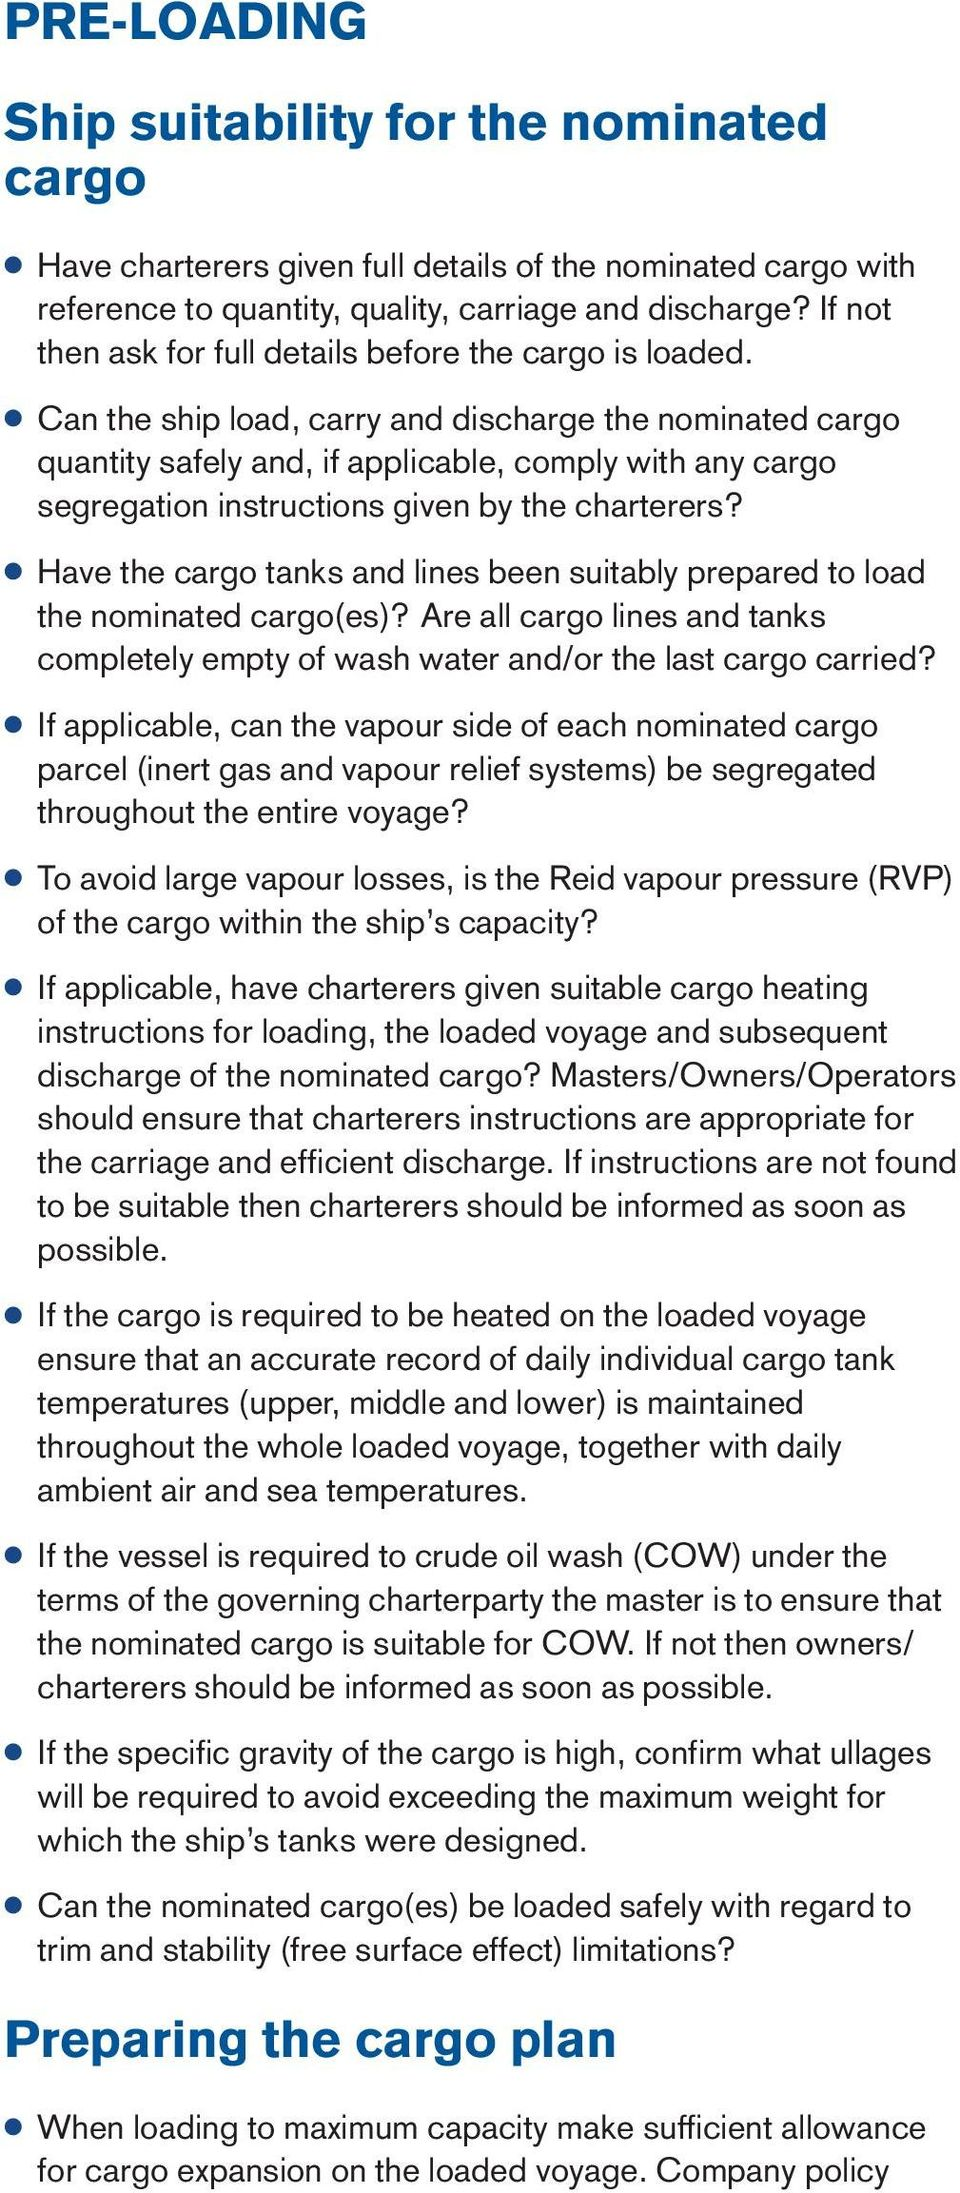 Can the ship load, carry and discharge the nominated cargo quantity safely and, if applicable, comply with any cargo segregation instructions given by the charterers?